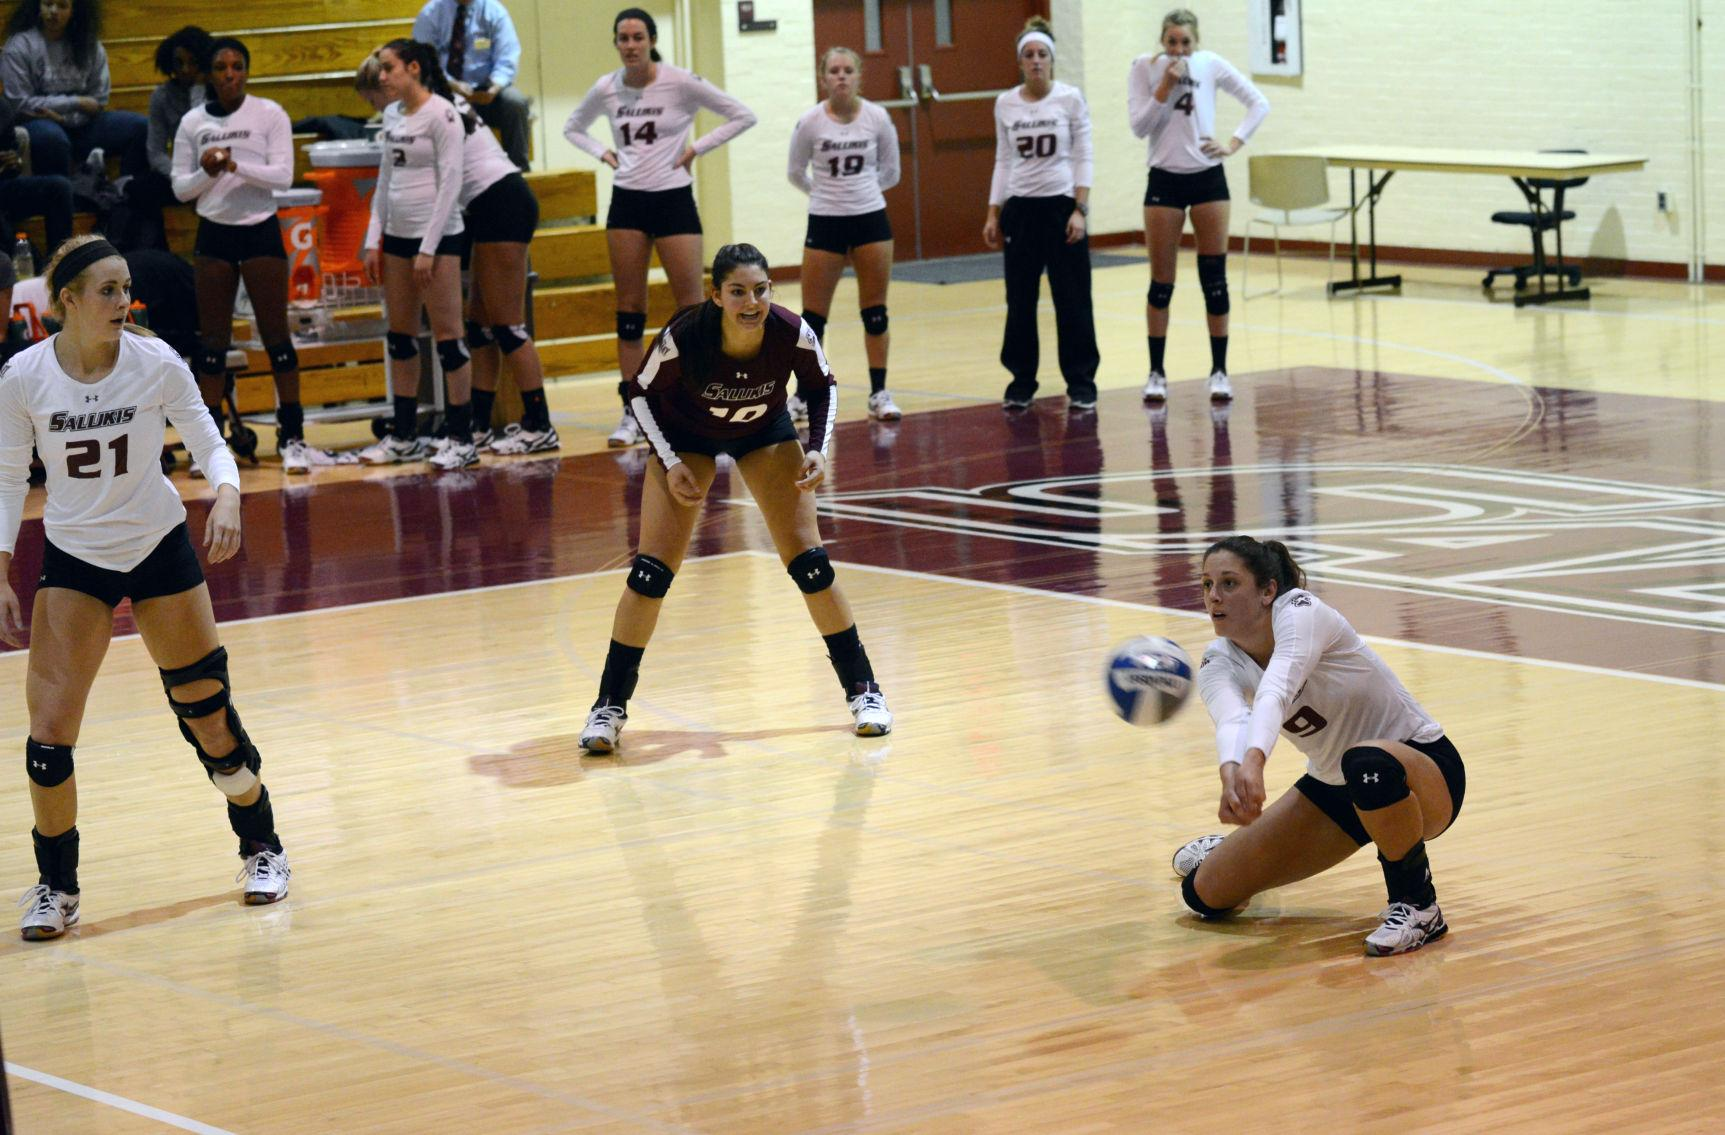 Andrea Estrada, an outside hitter, digs the ball during a match against Illinois State on Nov. 13 in Davies Gym. (DailyEgyptian.com file photo)